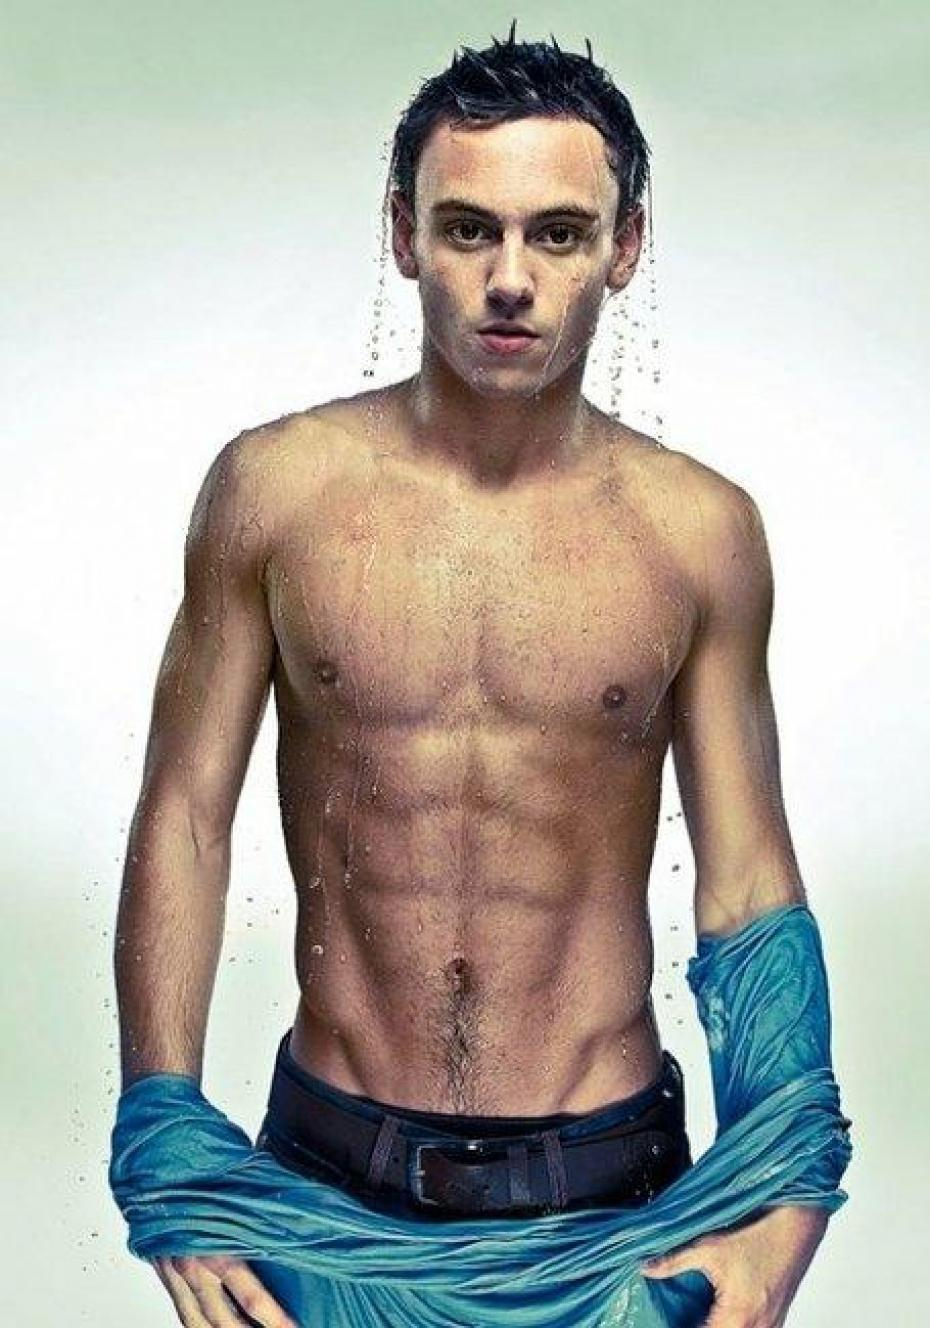 tom-daley-le-sportif-de-ces-dames-hot-19